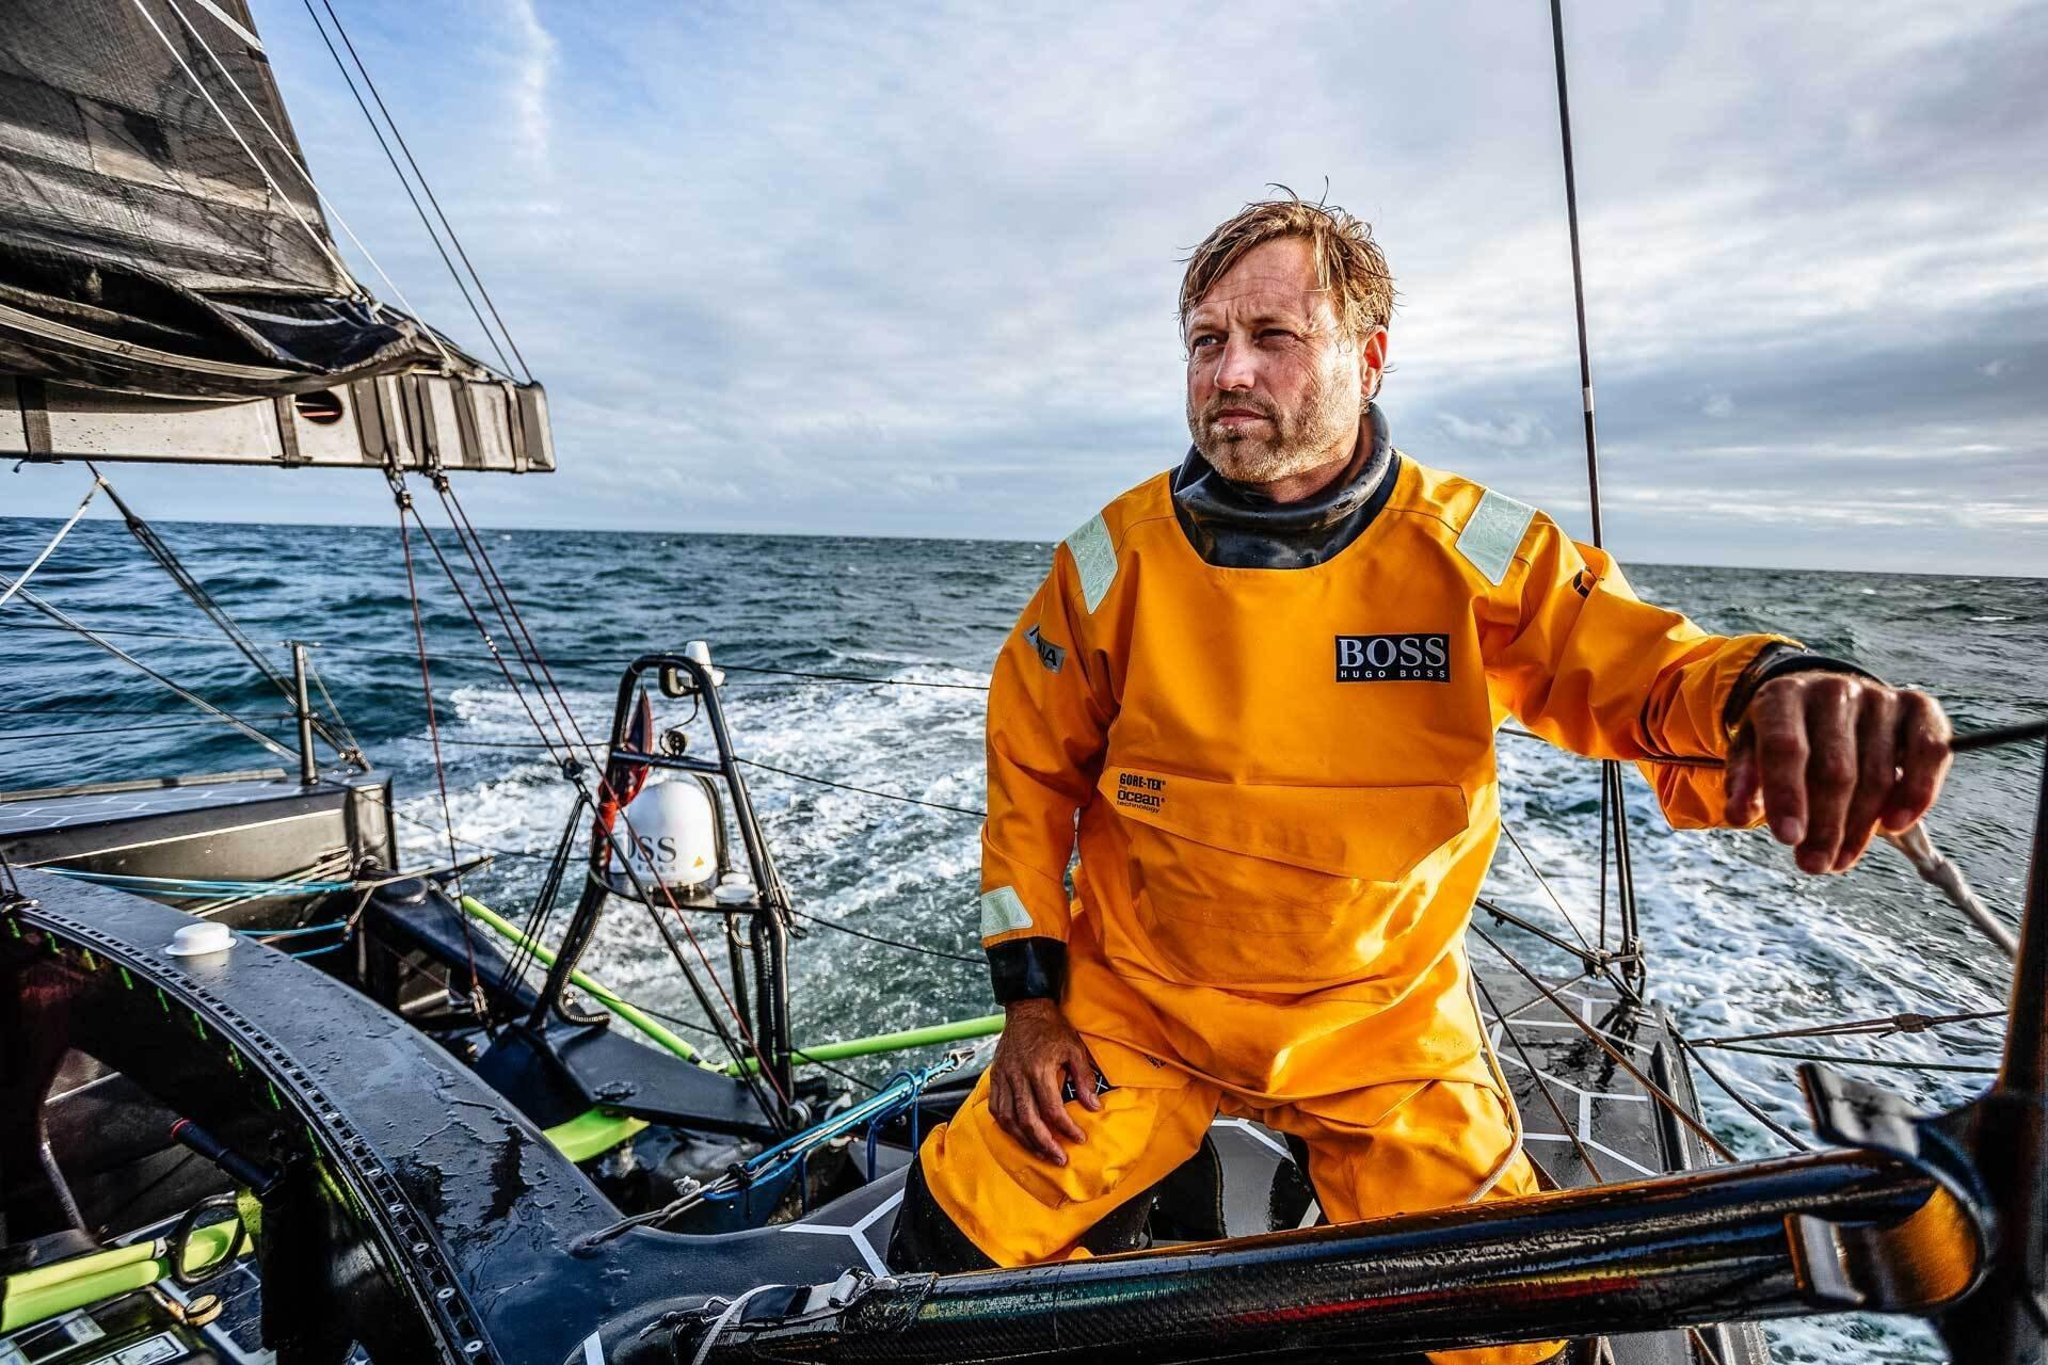 School's new Maritime Centre backed by Sir Ben Ainslie and British sailor Alex Thomson